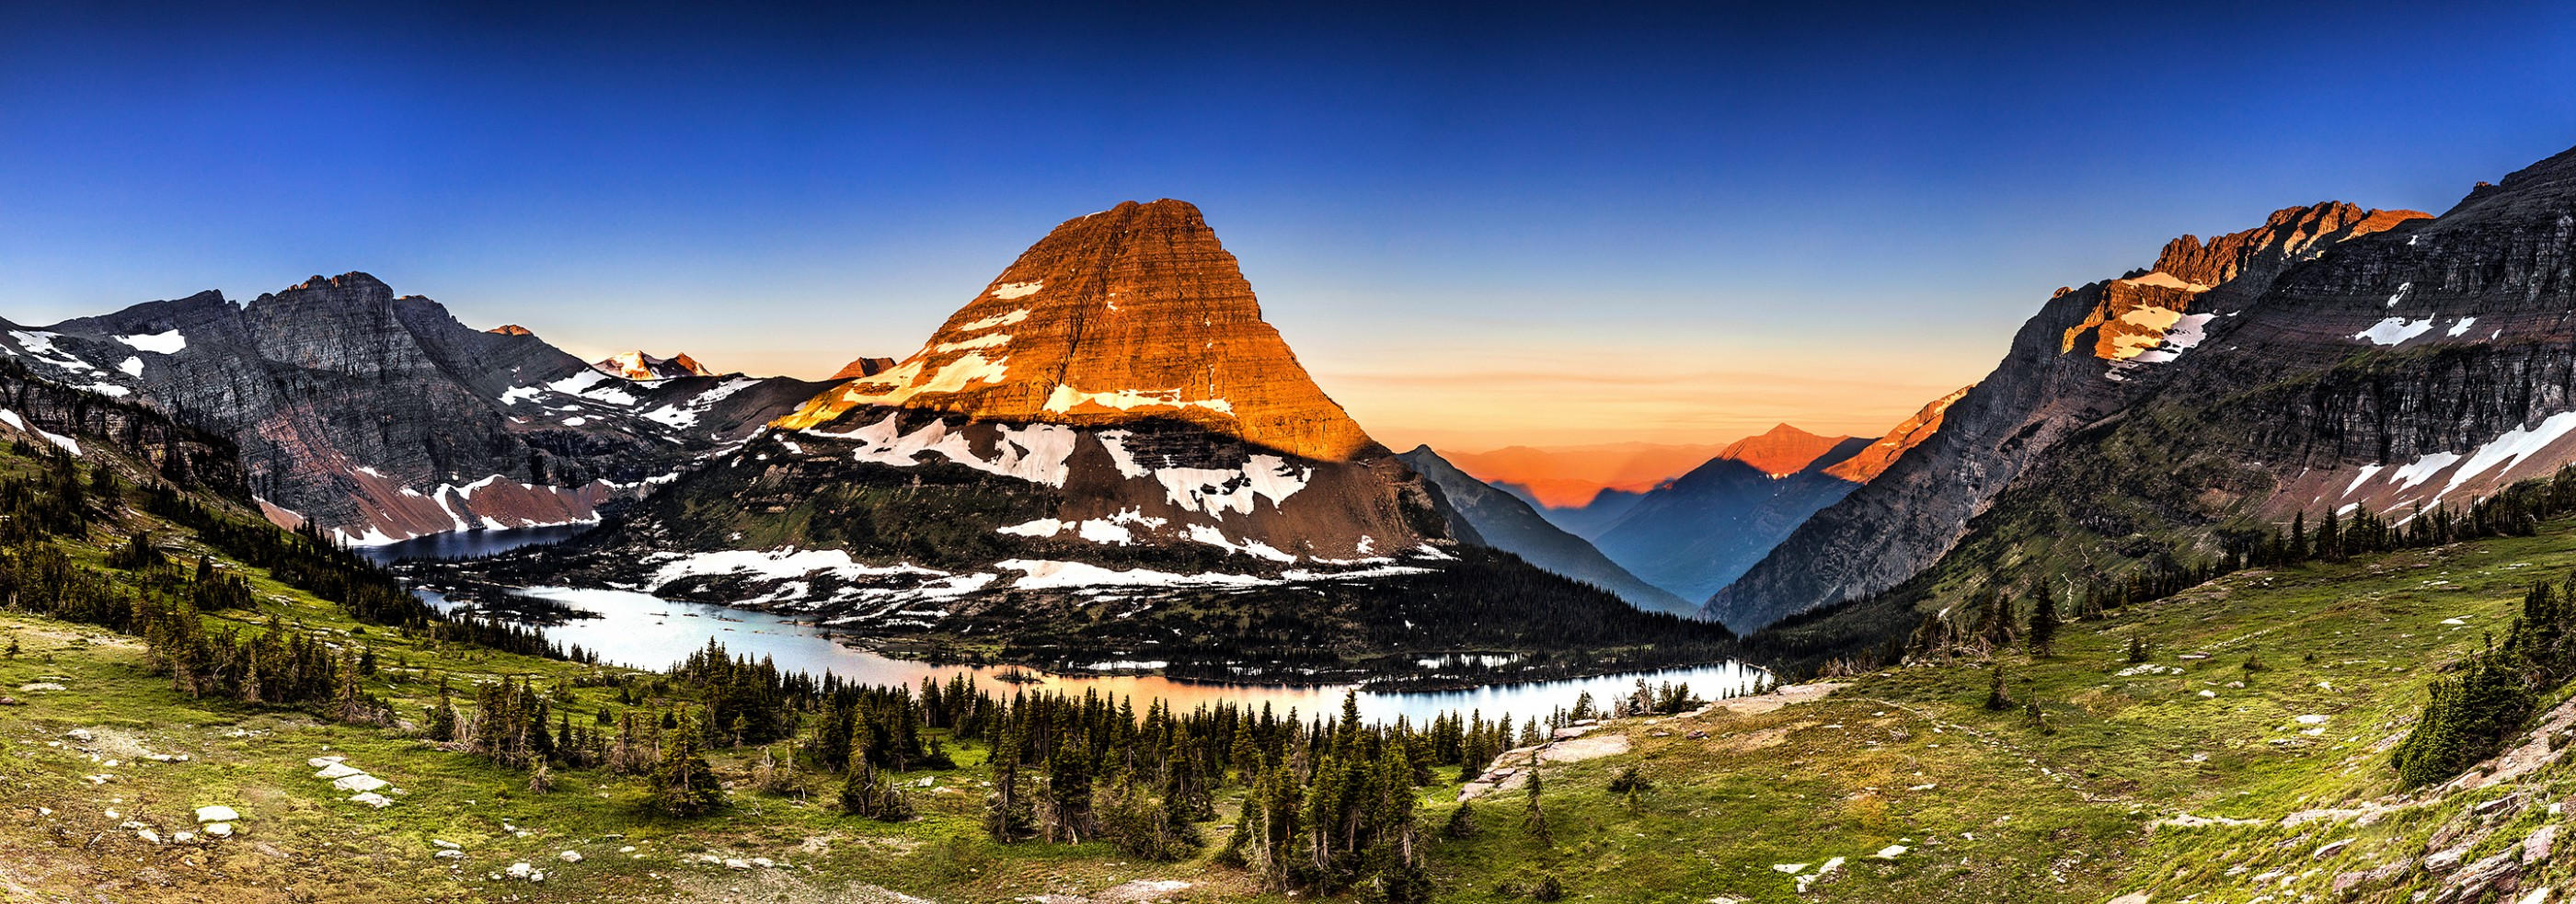 hidden-lake-overlook-sunrise-glacier-montana-ash-newell